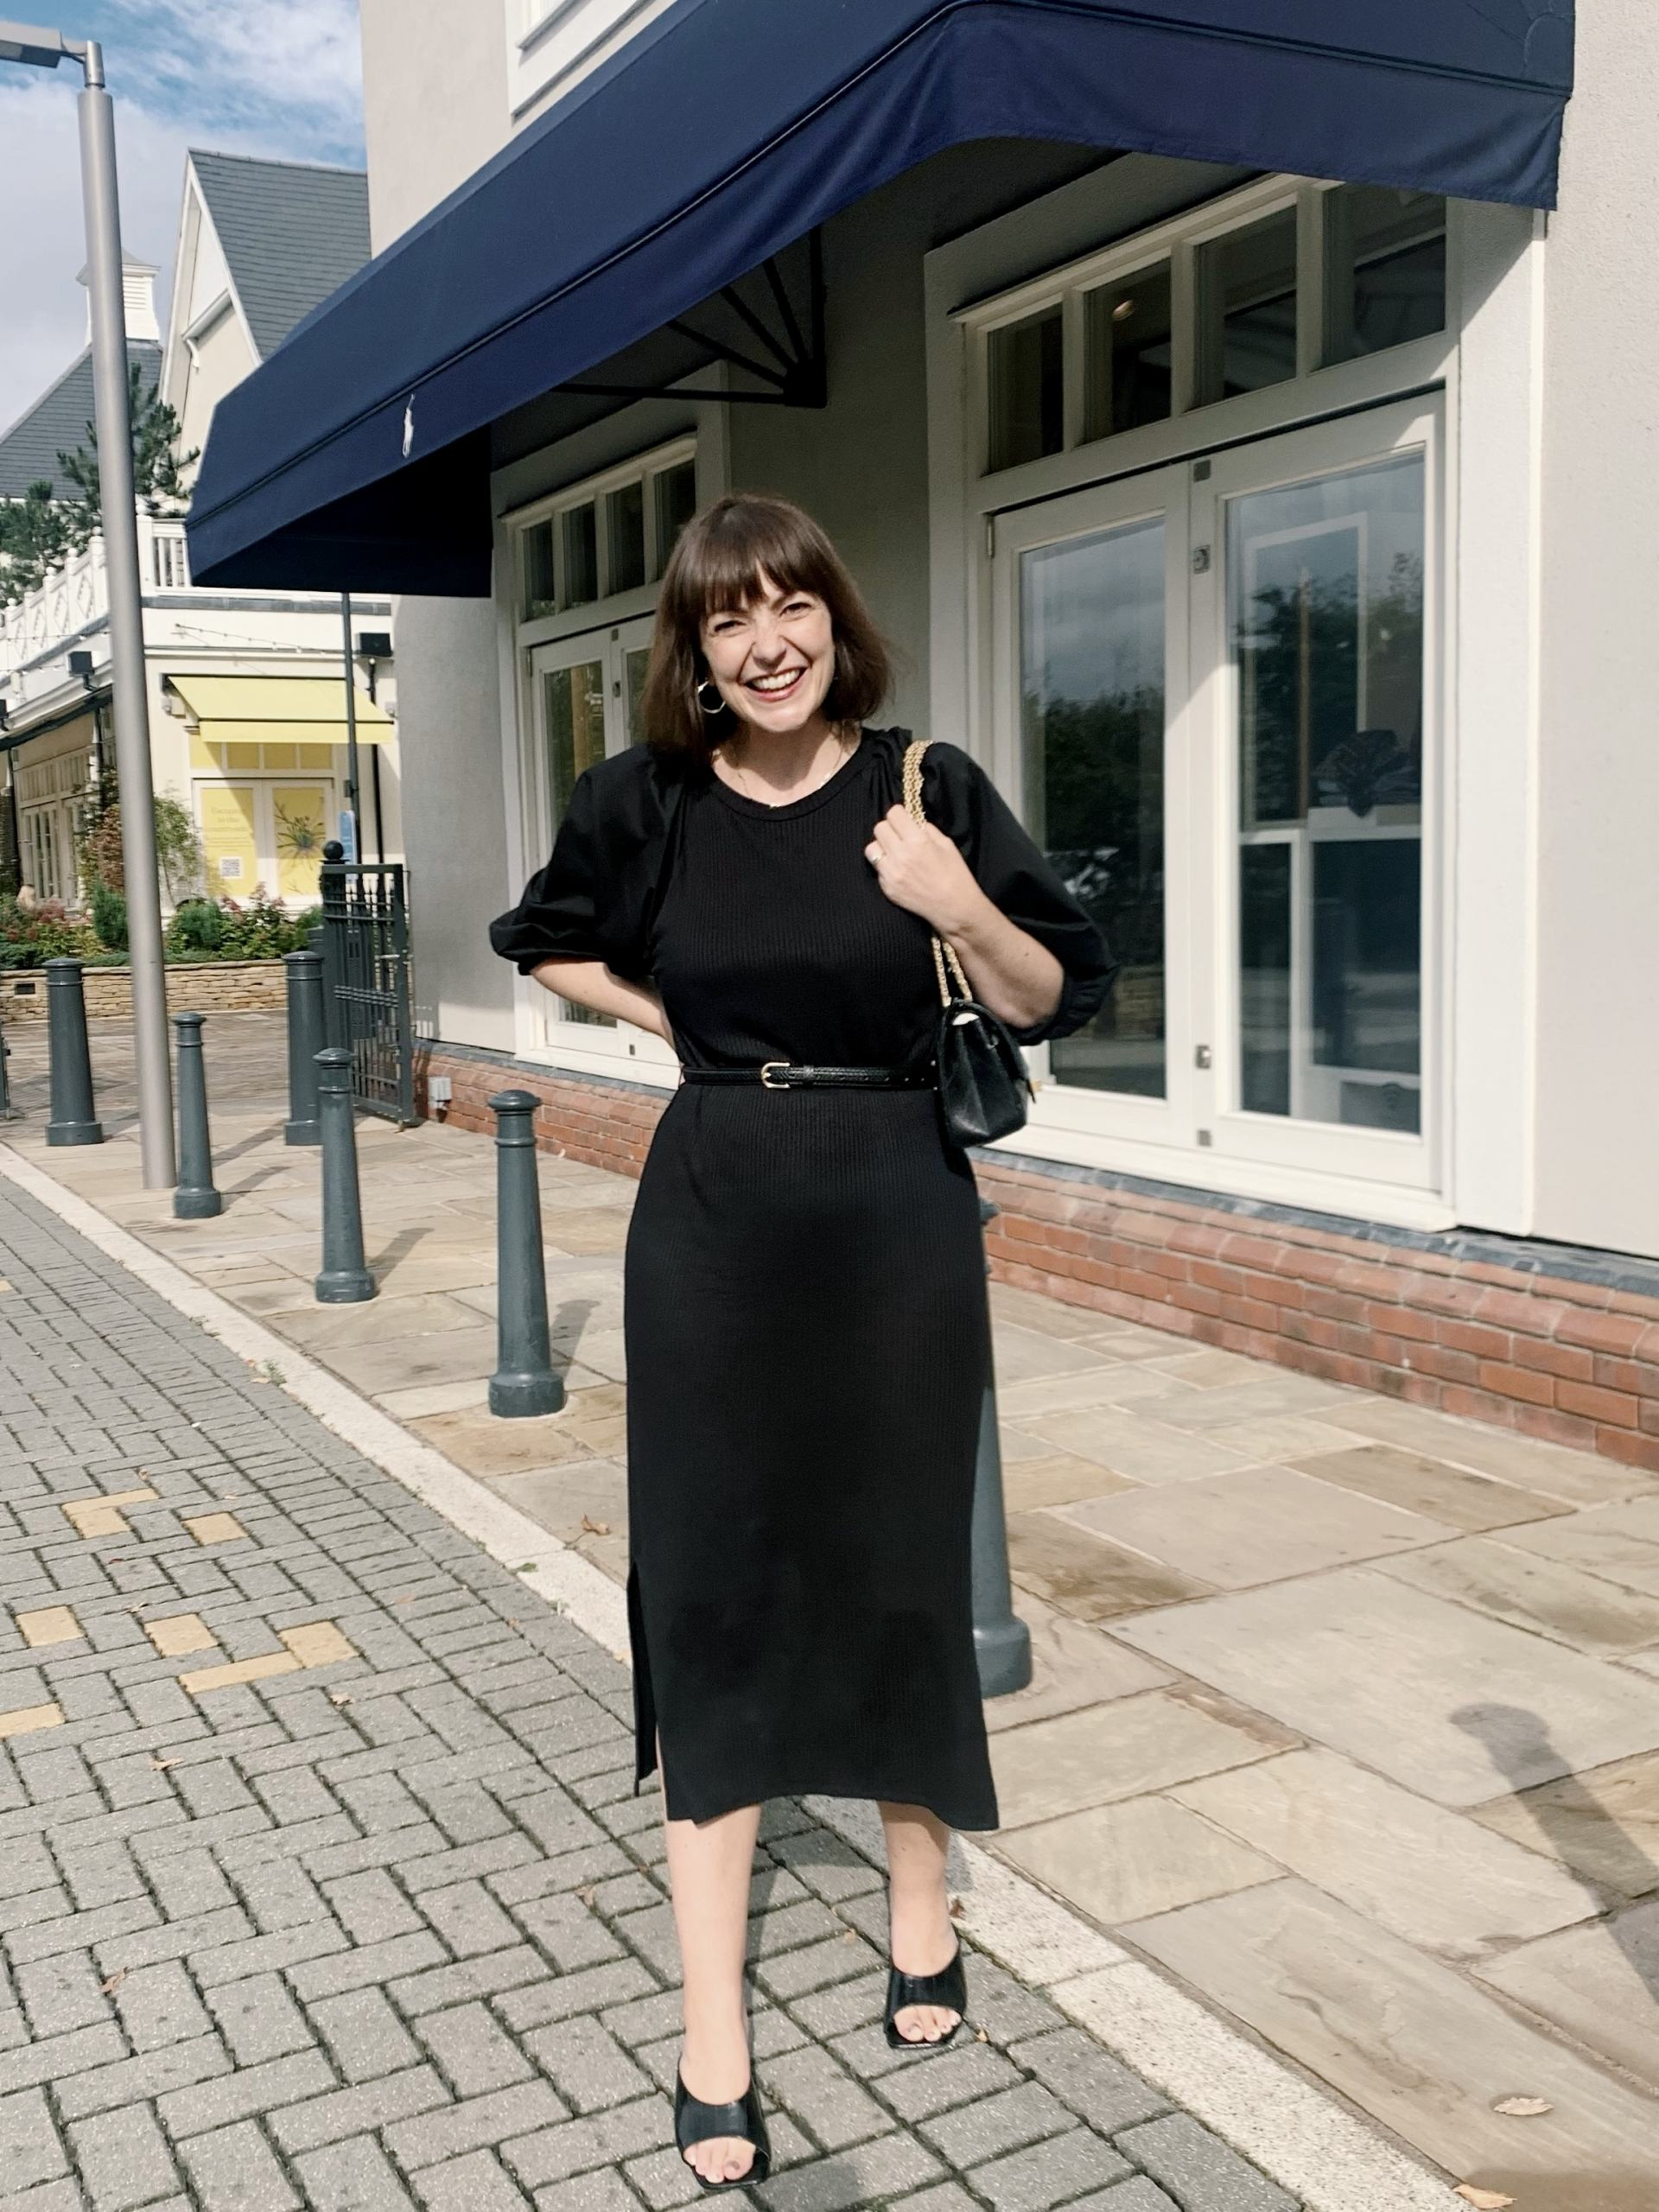 NEW AUTUMN BUYS! Black knitted dress - Lizzi at Bicester Village